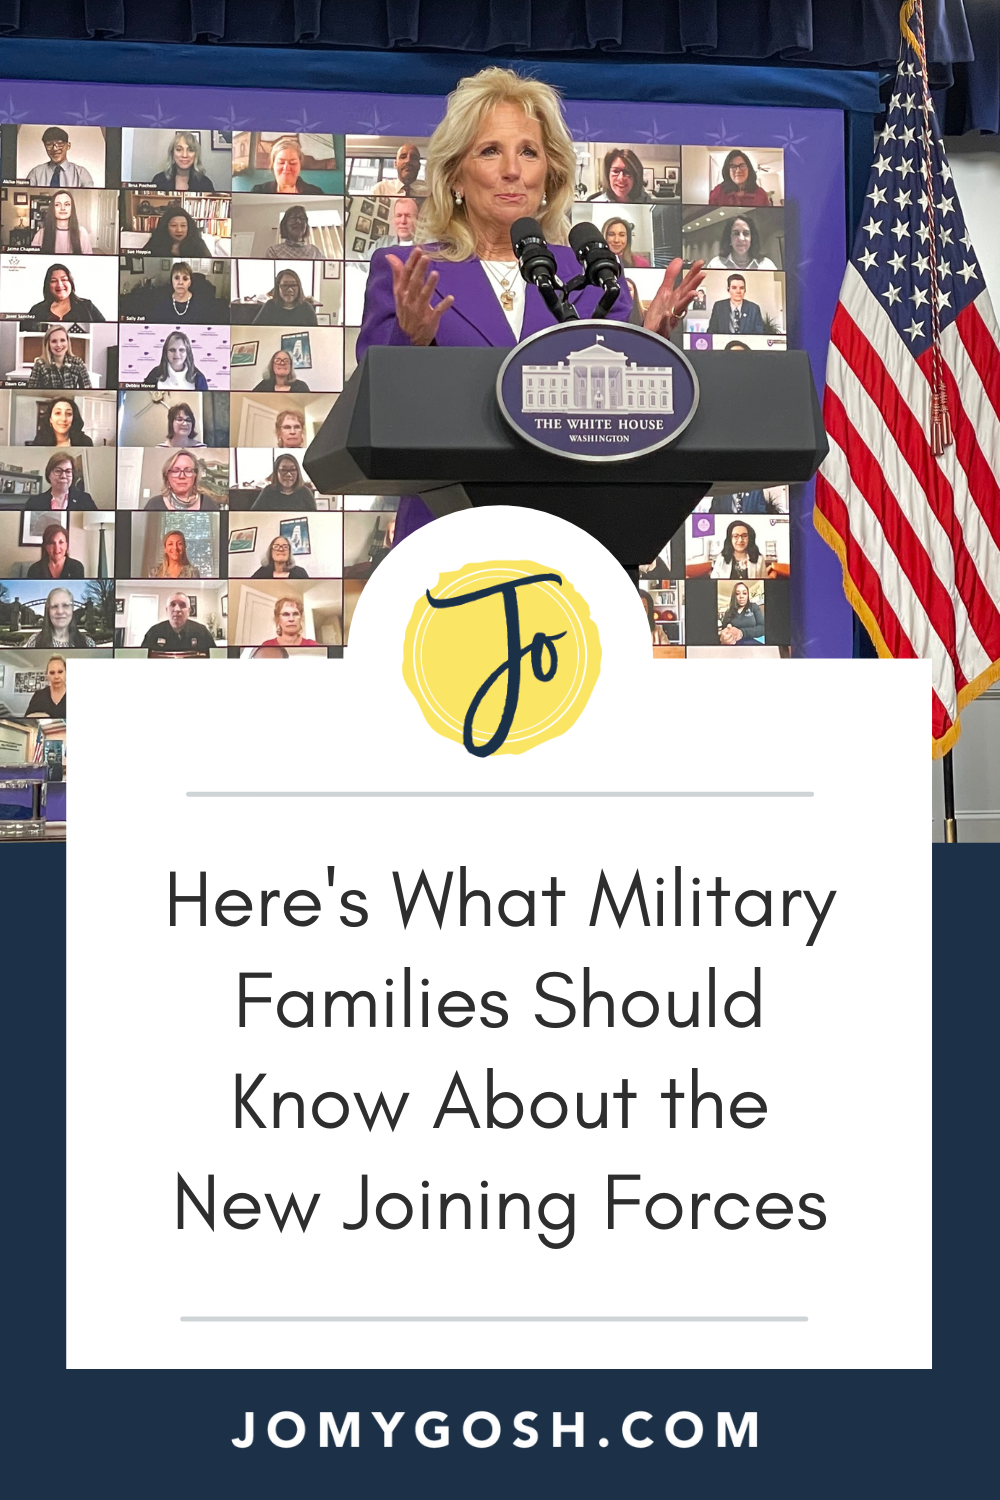 Joining Forces is back! Here's what you should know right now about the announcement. #military #militarynews #militaryfamilies #whitehouse #militaryspouse #employment #militarychild